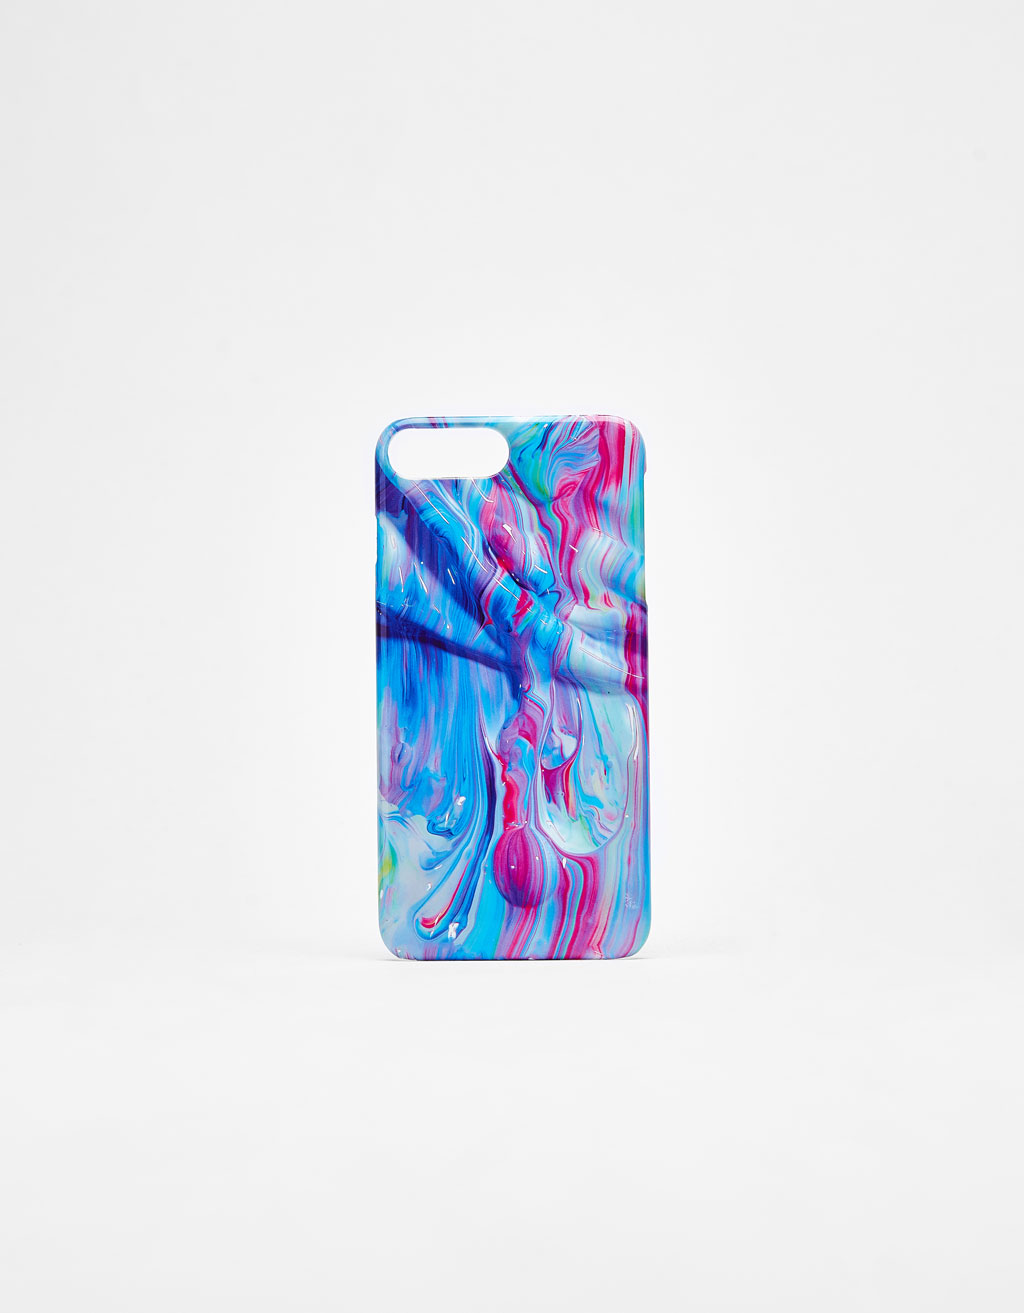 Watercolour iPhone 6plus/7Plus/8Plus case